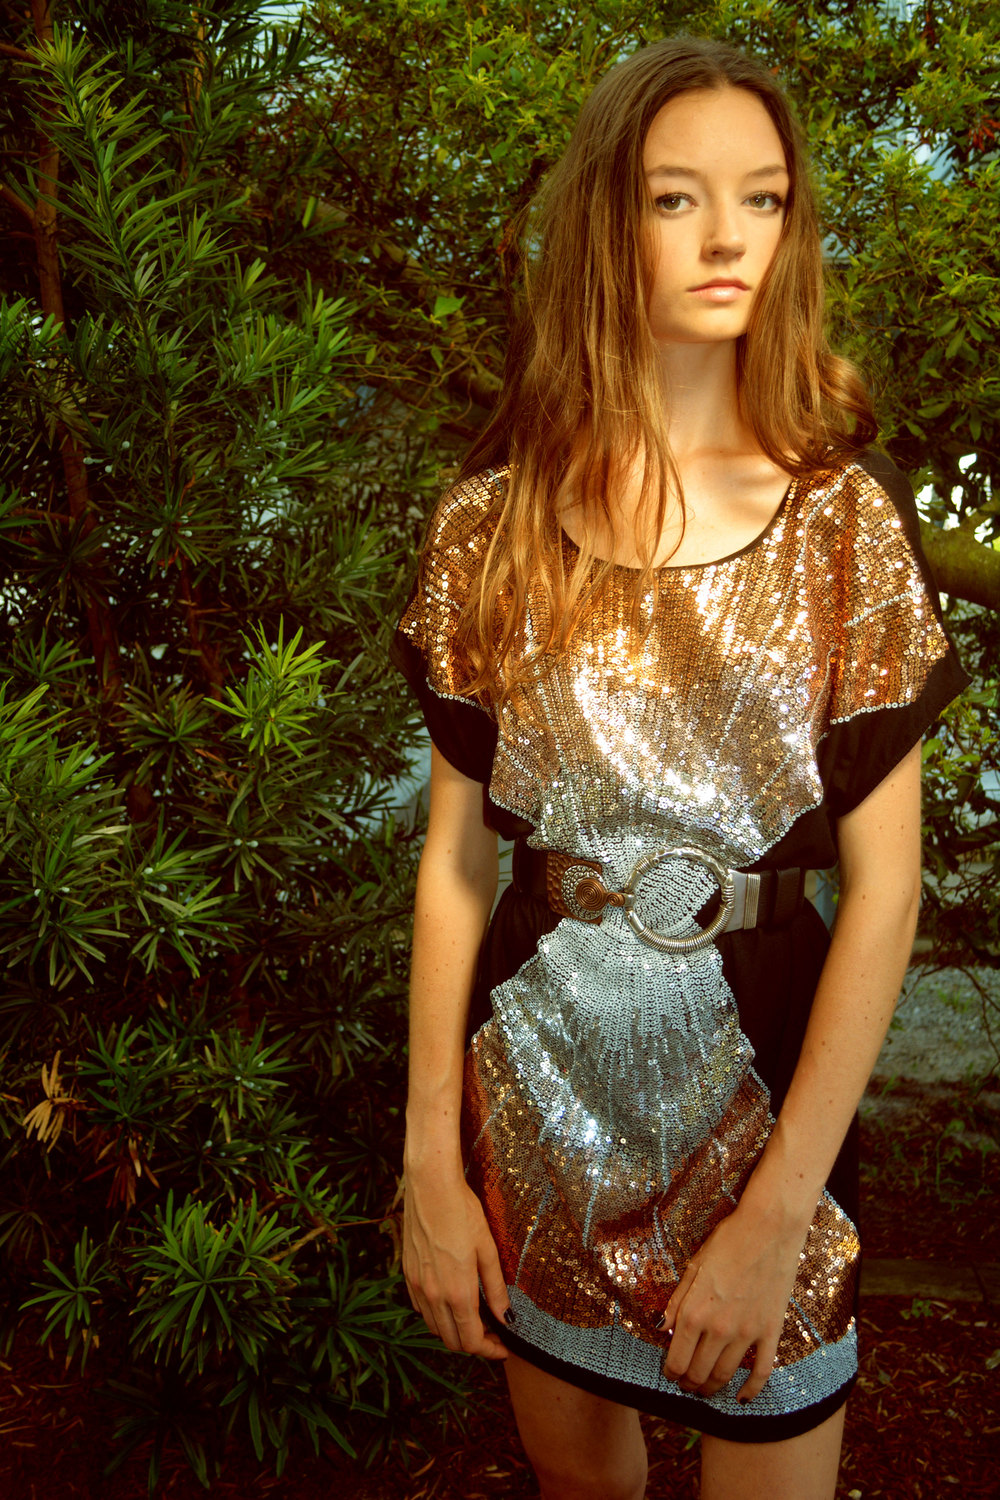 Gold-and-Silver-Dress-Ceara-Genysis-Salon-WEB.jpg